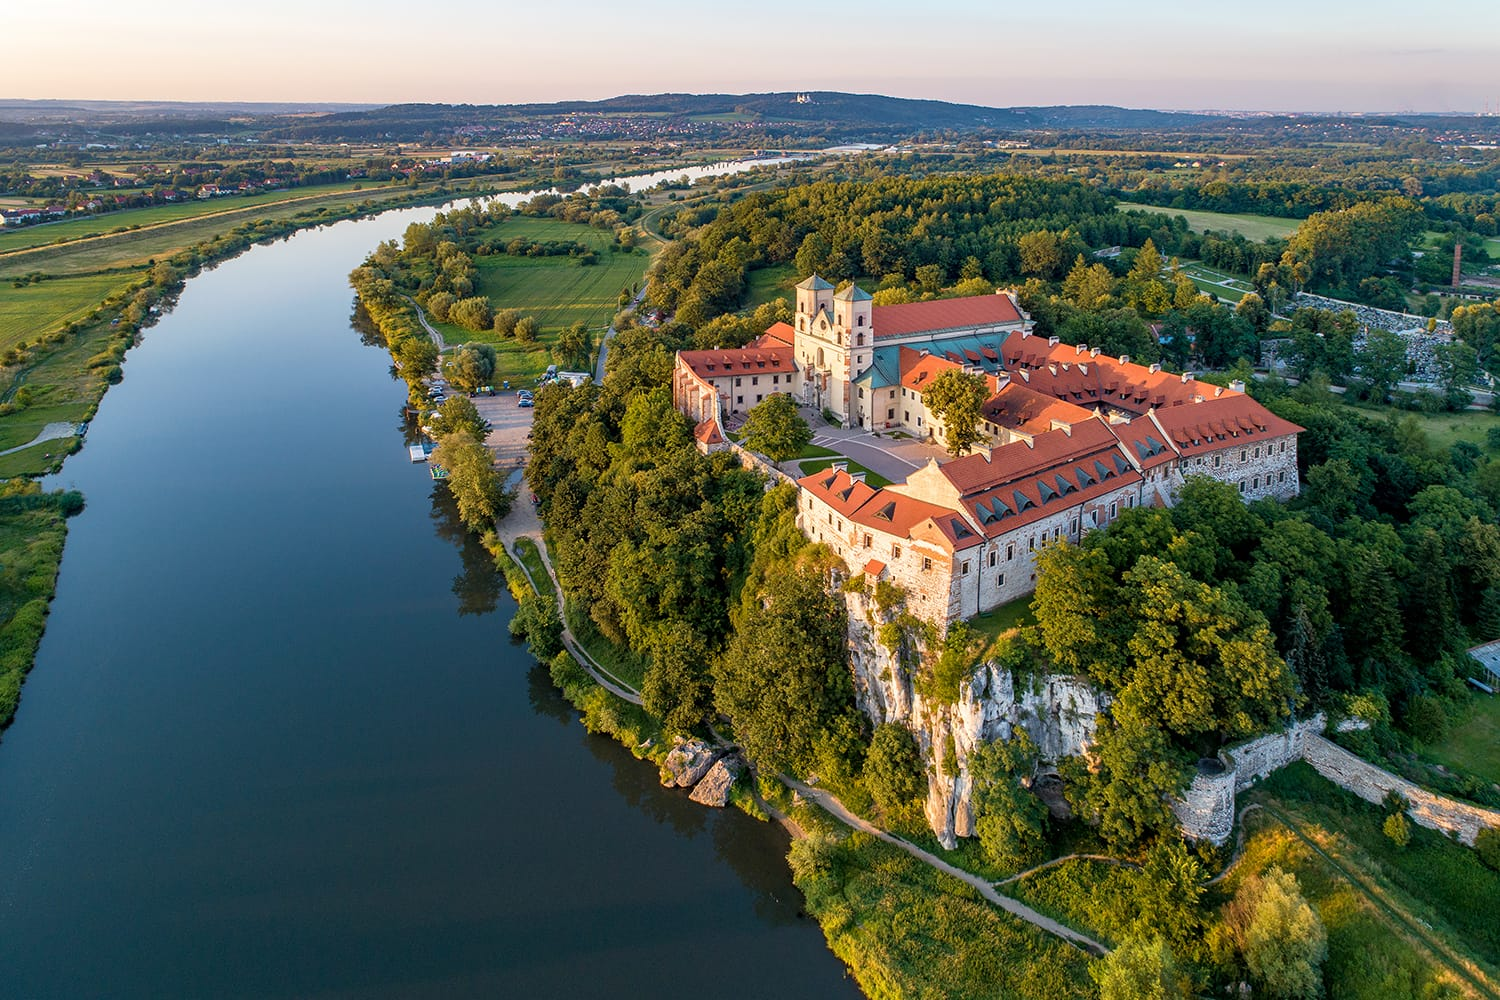 Tyniec near Krakow, Poland. Benedictine abbey, monastery and church on the rocky cliff and Vistula river.